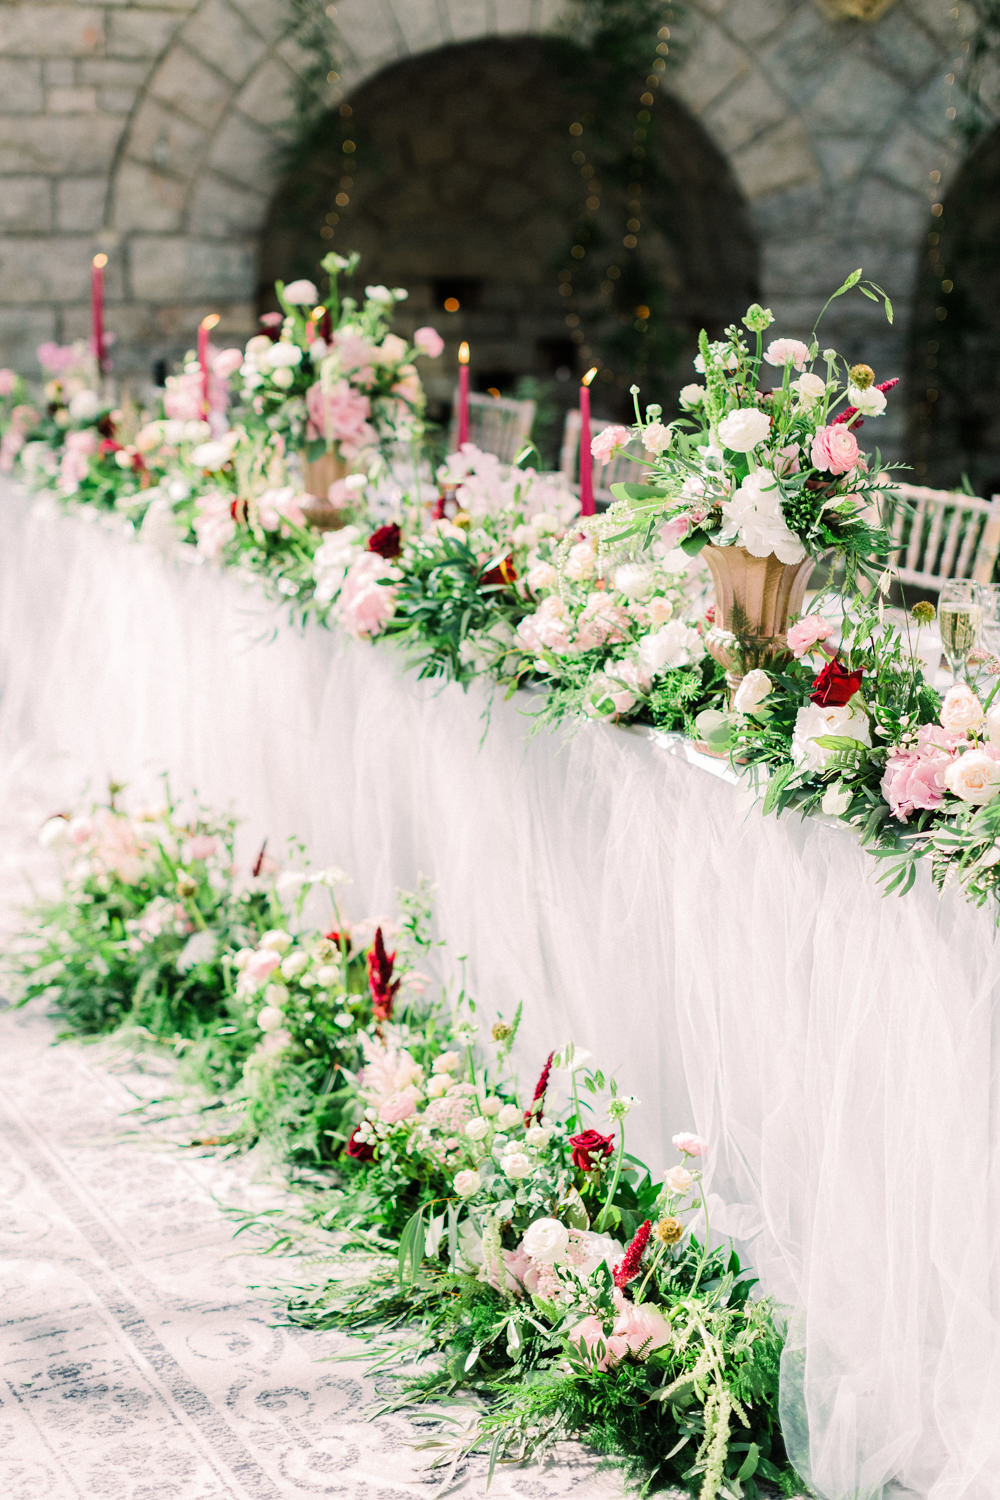 Top Table Long Tables Red Candles Napkins Flowers Greenery Tortworth Court Wedding Sanshine Photography